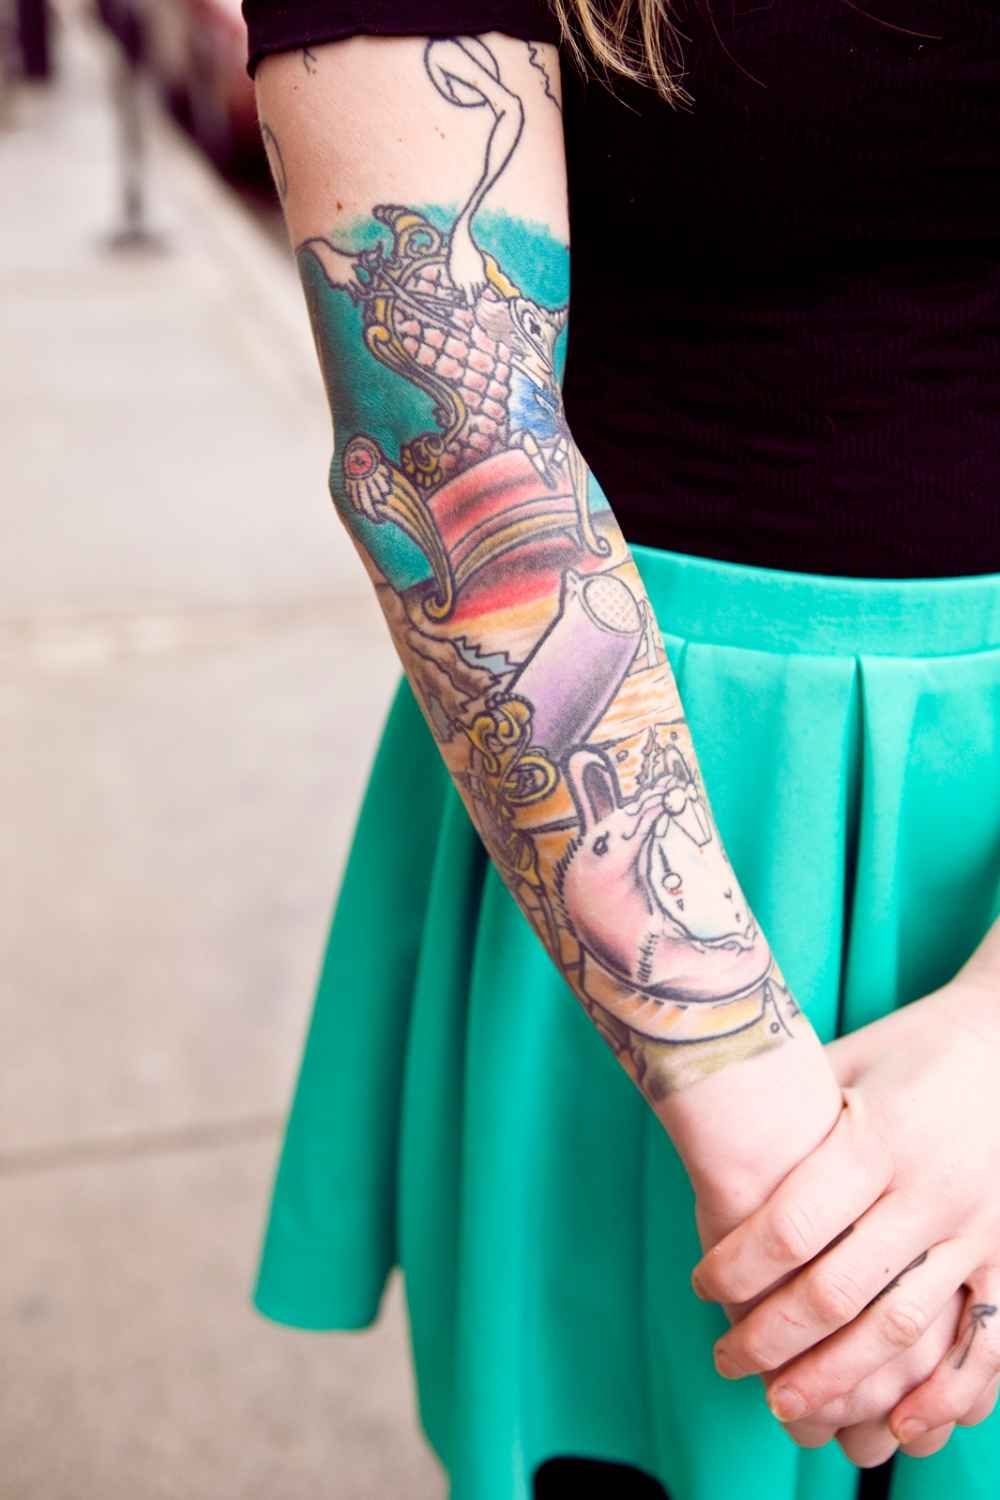 5 local tattoo shops that are anything but scary tattoo